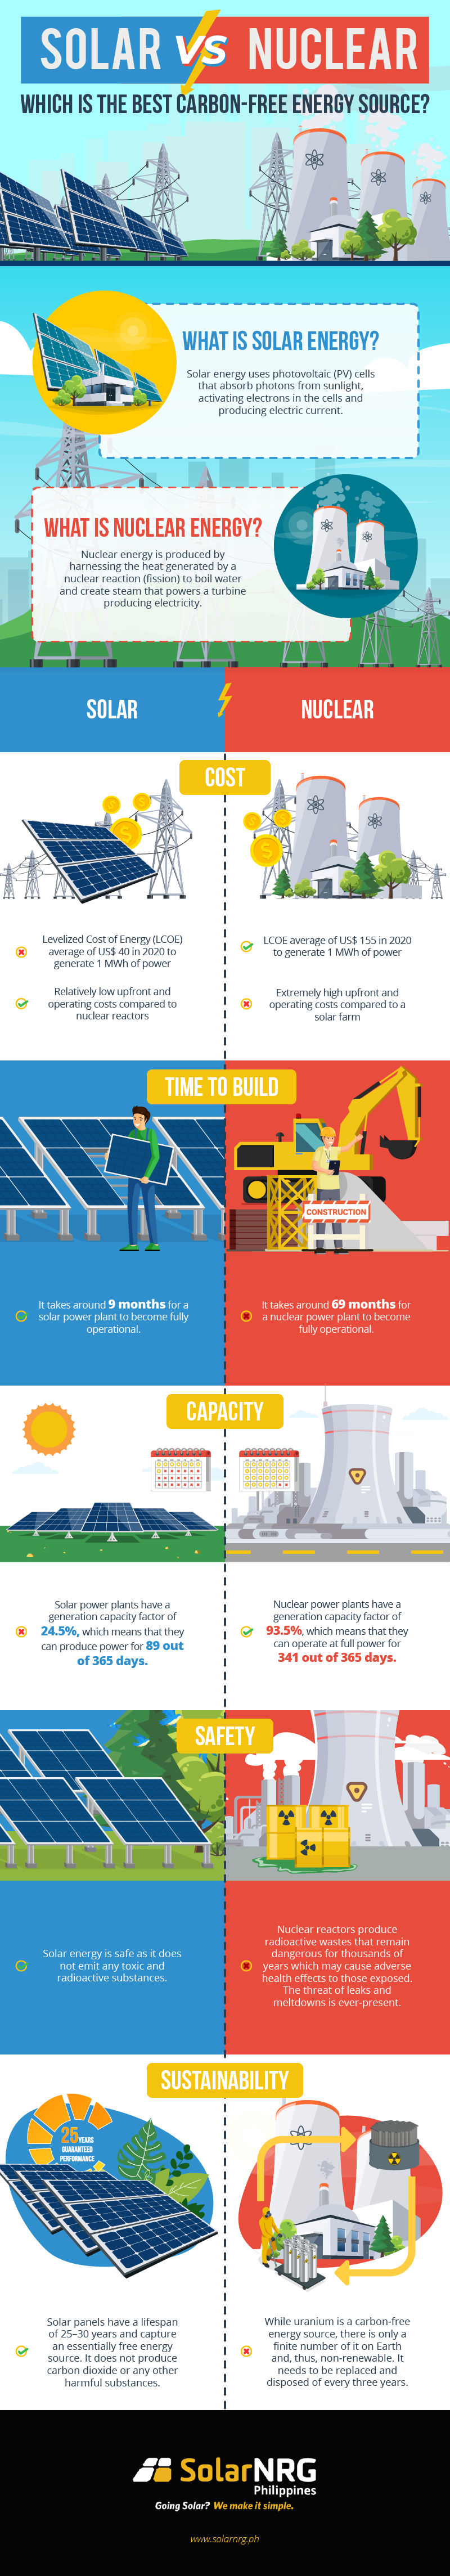 Infographic guide to solar energy and nuclear energy